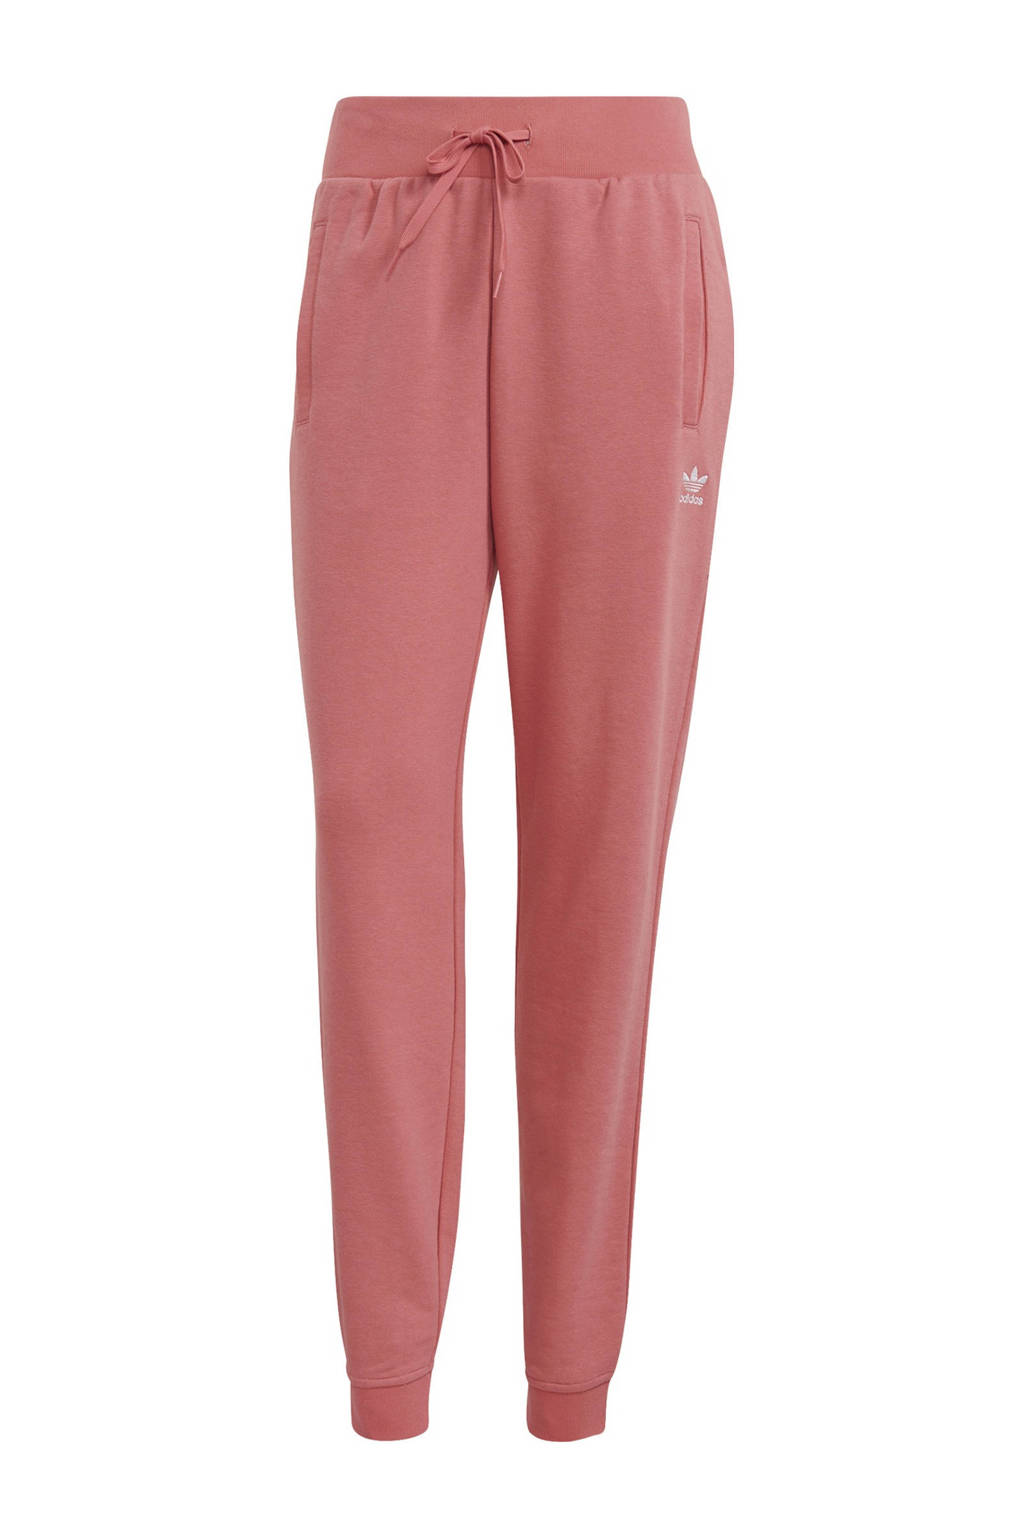 adidas Originals joggingbroek lichtroze, Roze